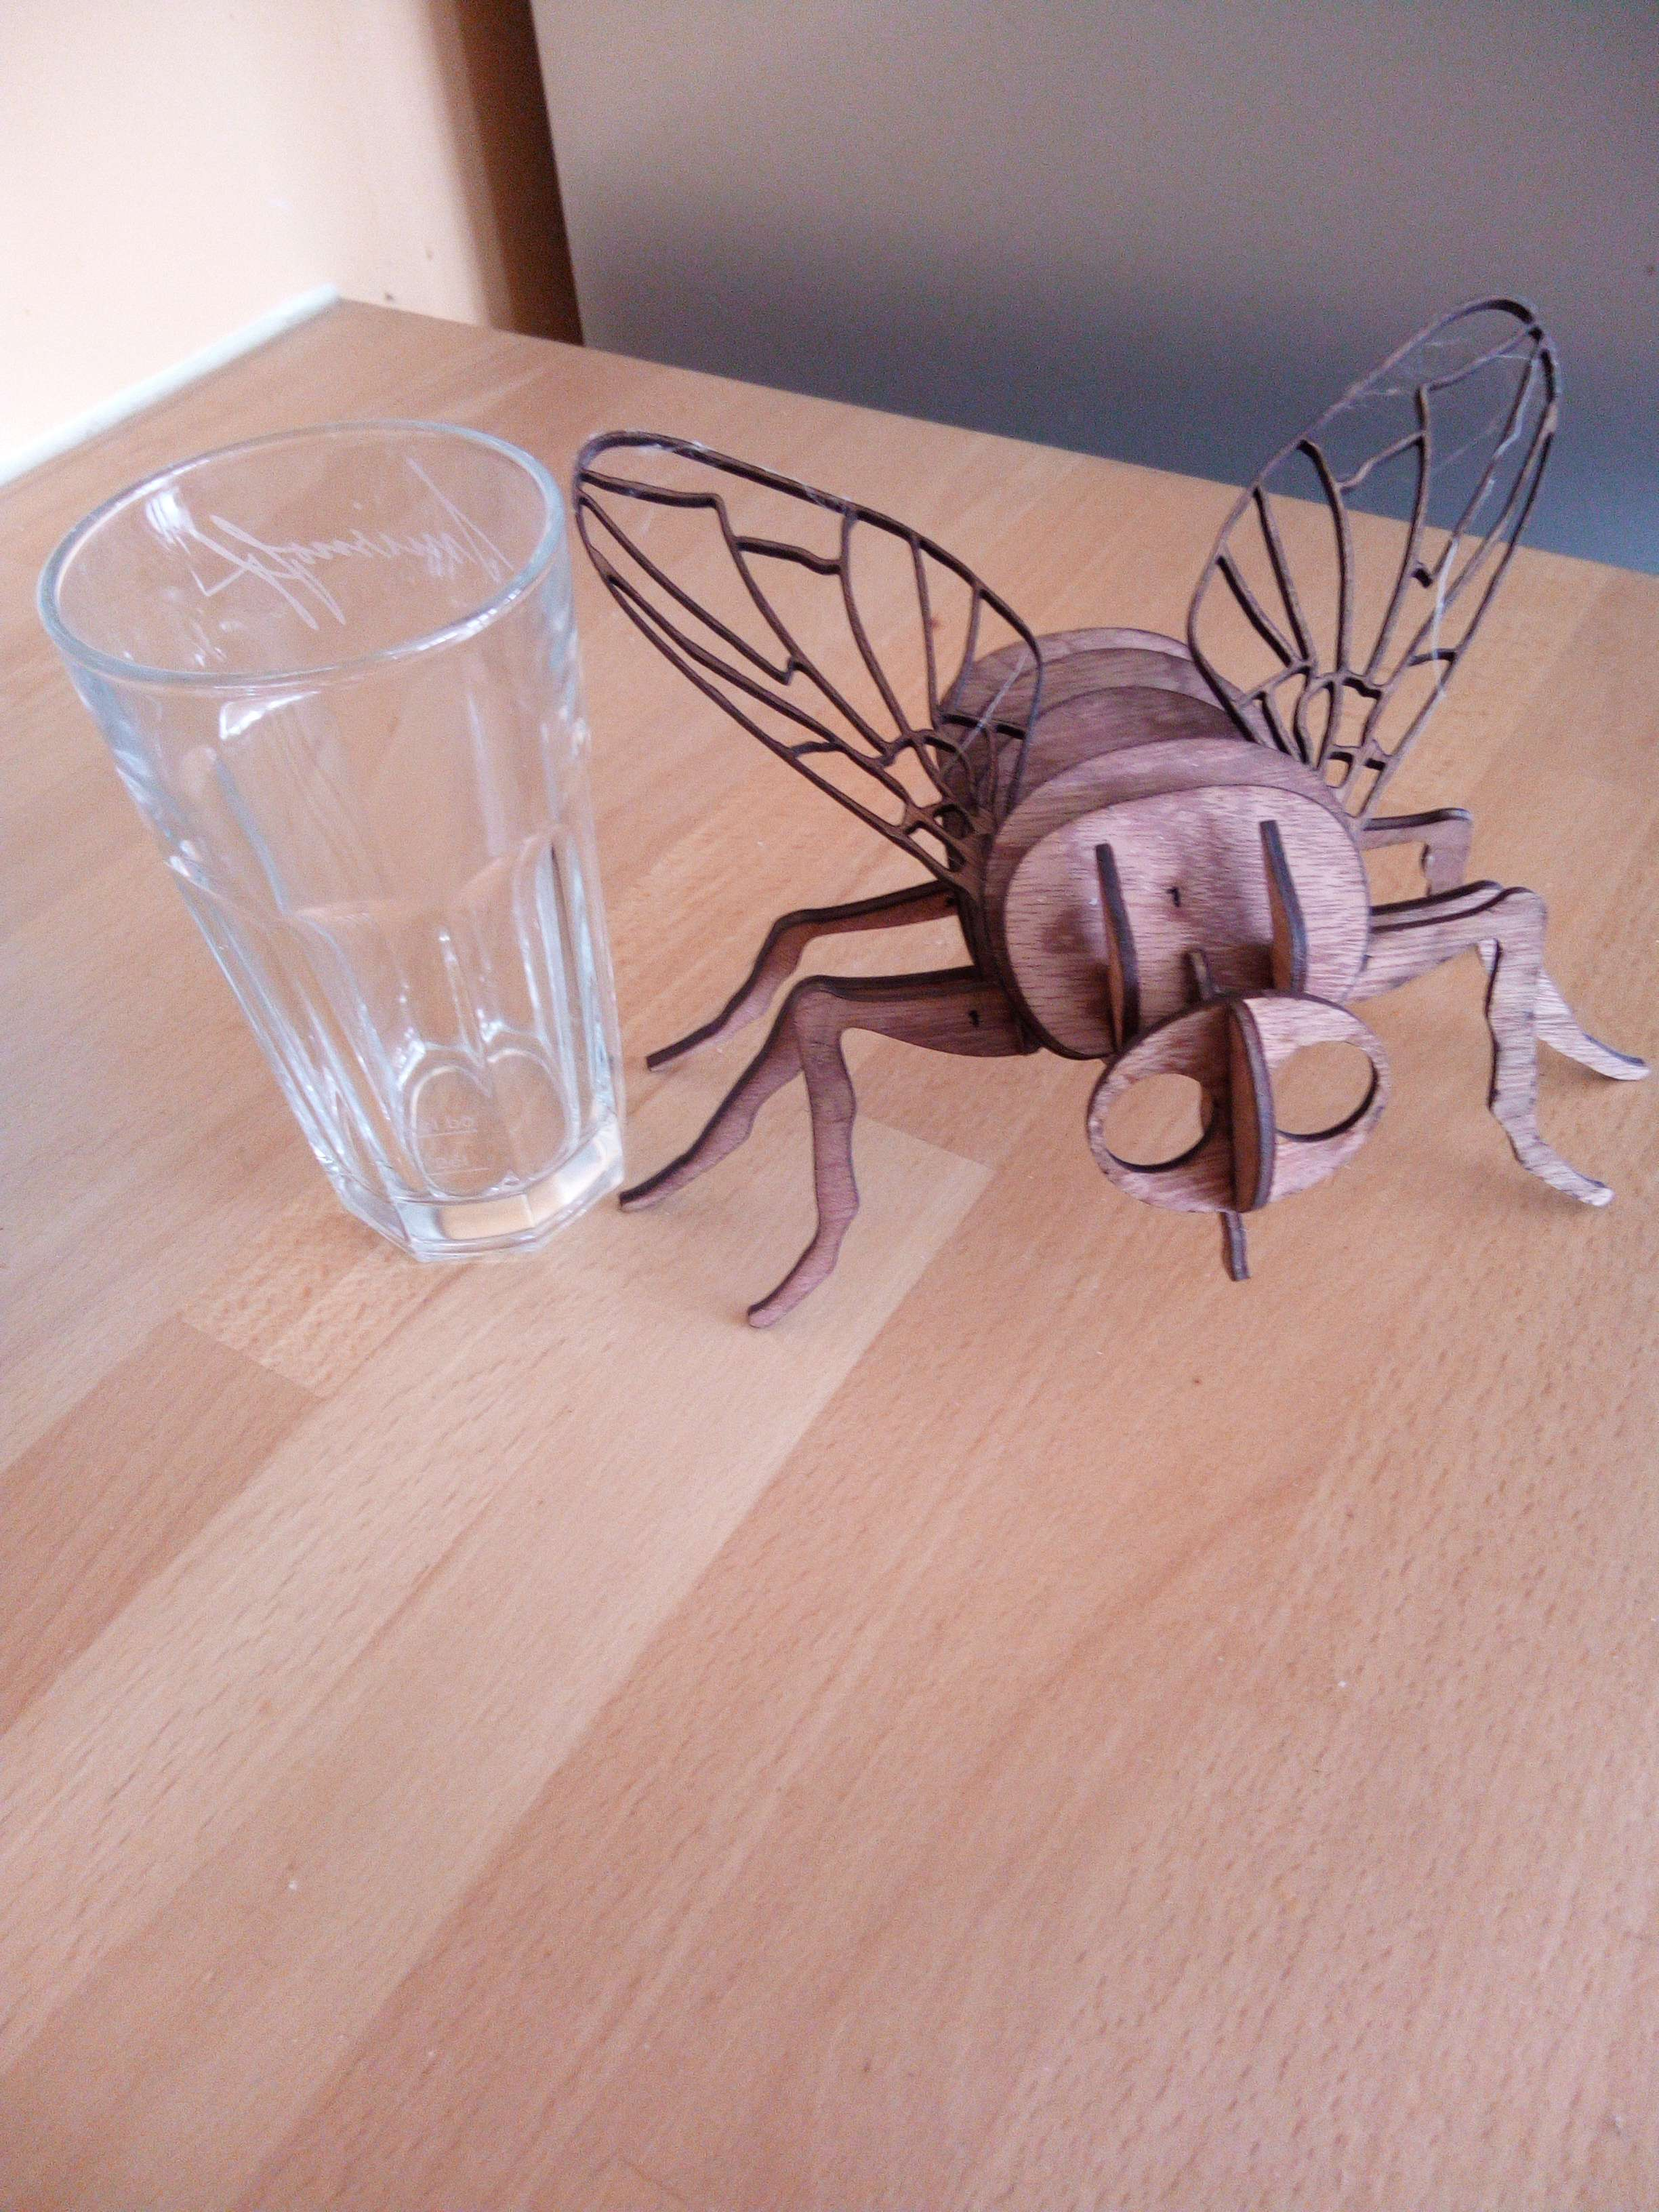 do it yourself insect